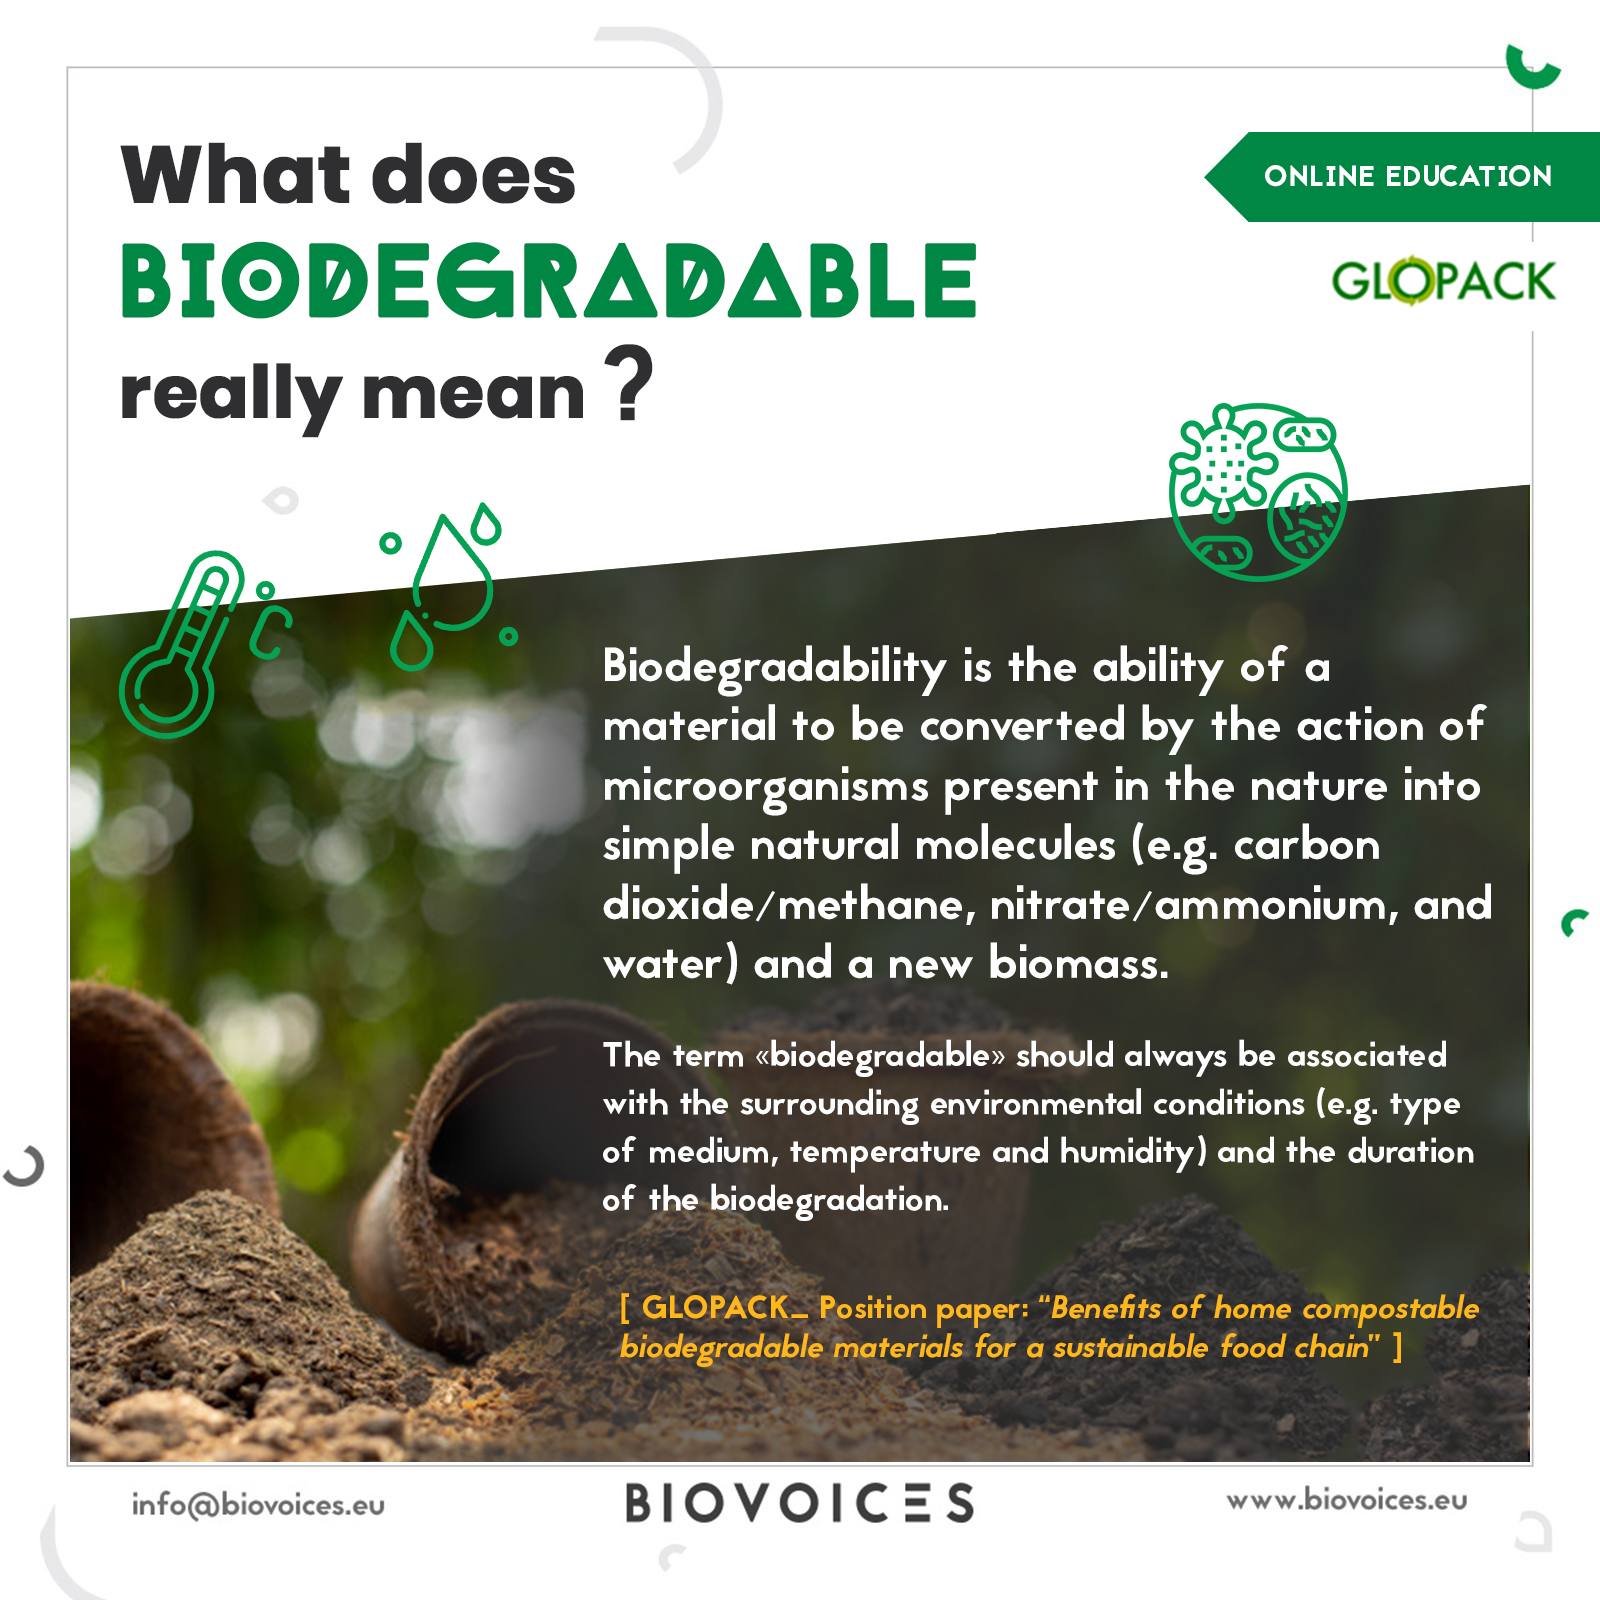 What does biodegradable really mean?